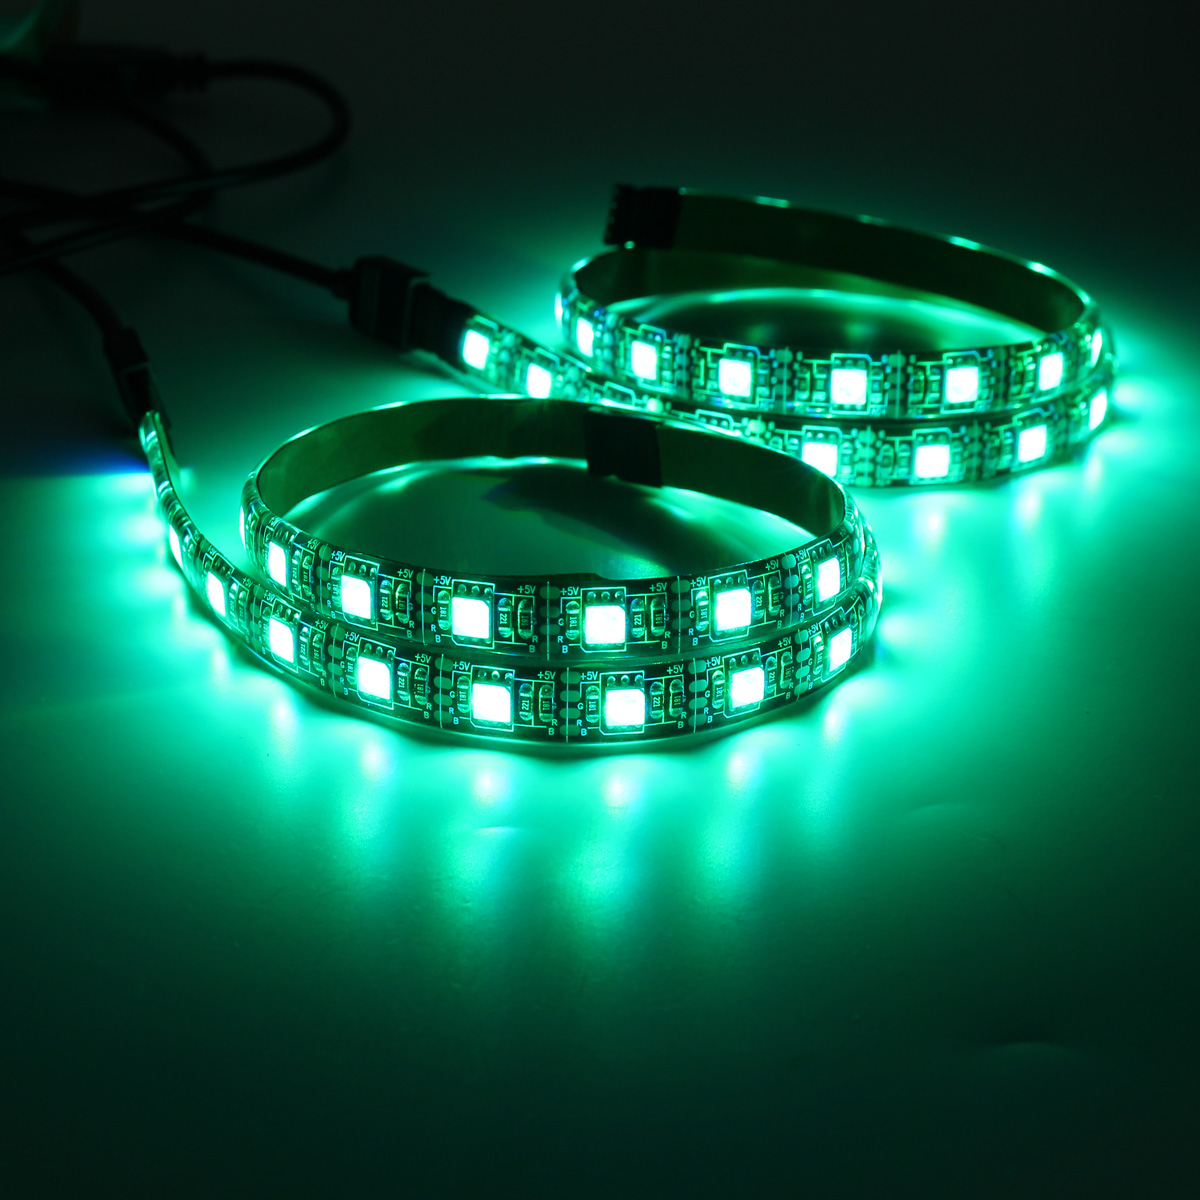 12mm 4pin Led Connector For Rgb Led Strip Lights With Wire Alex Nld